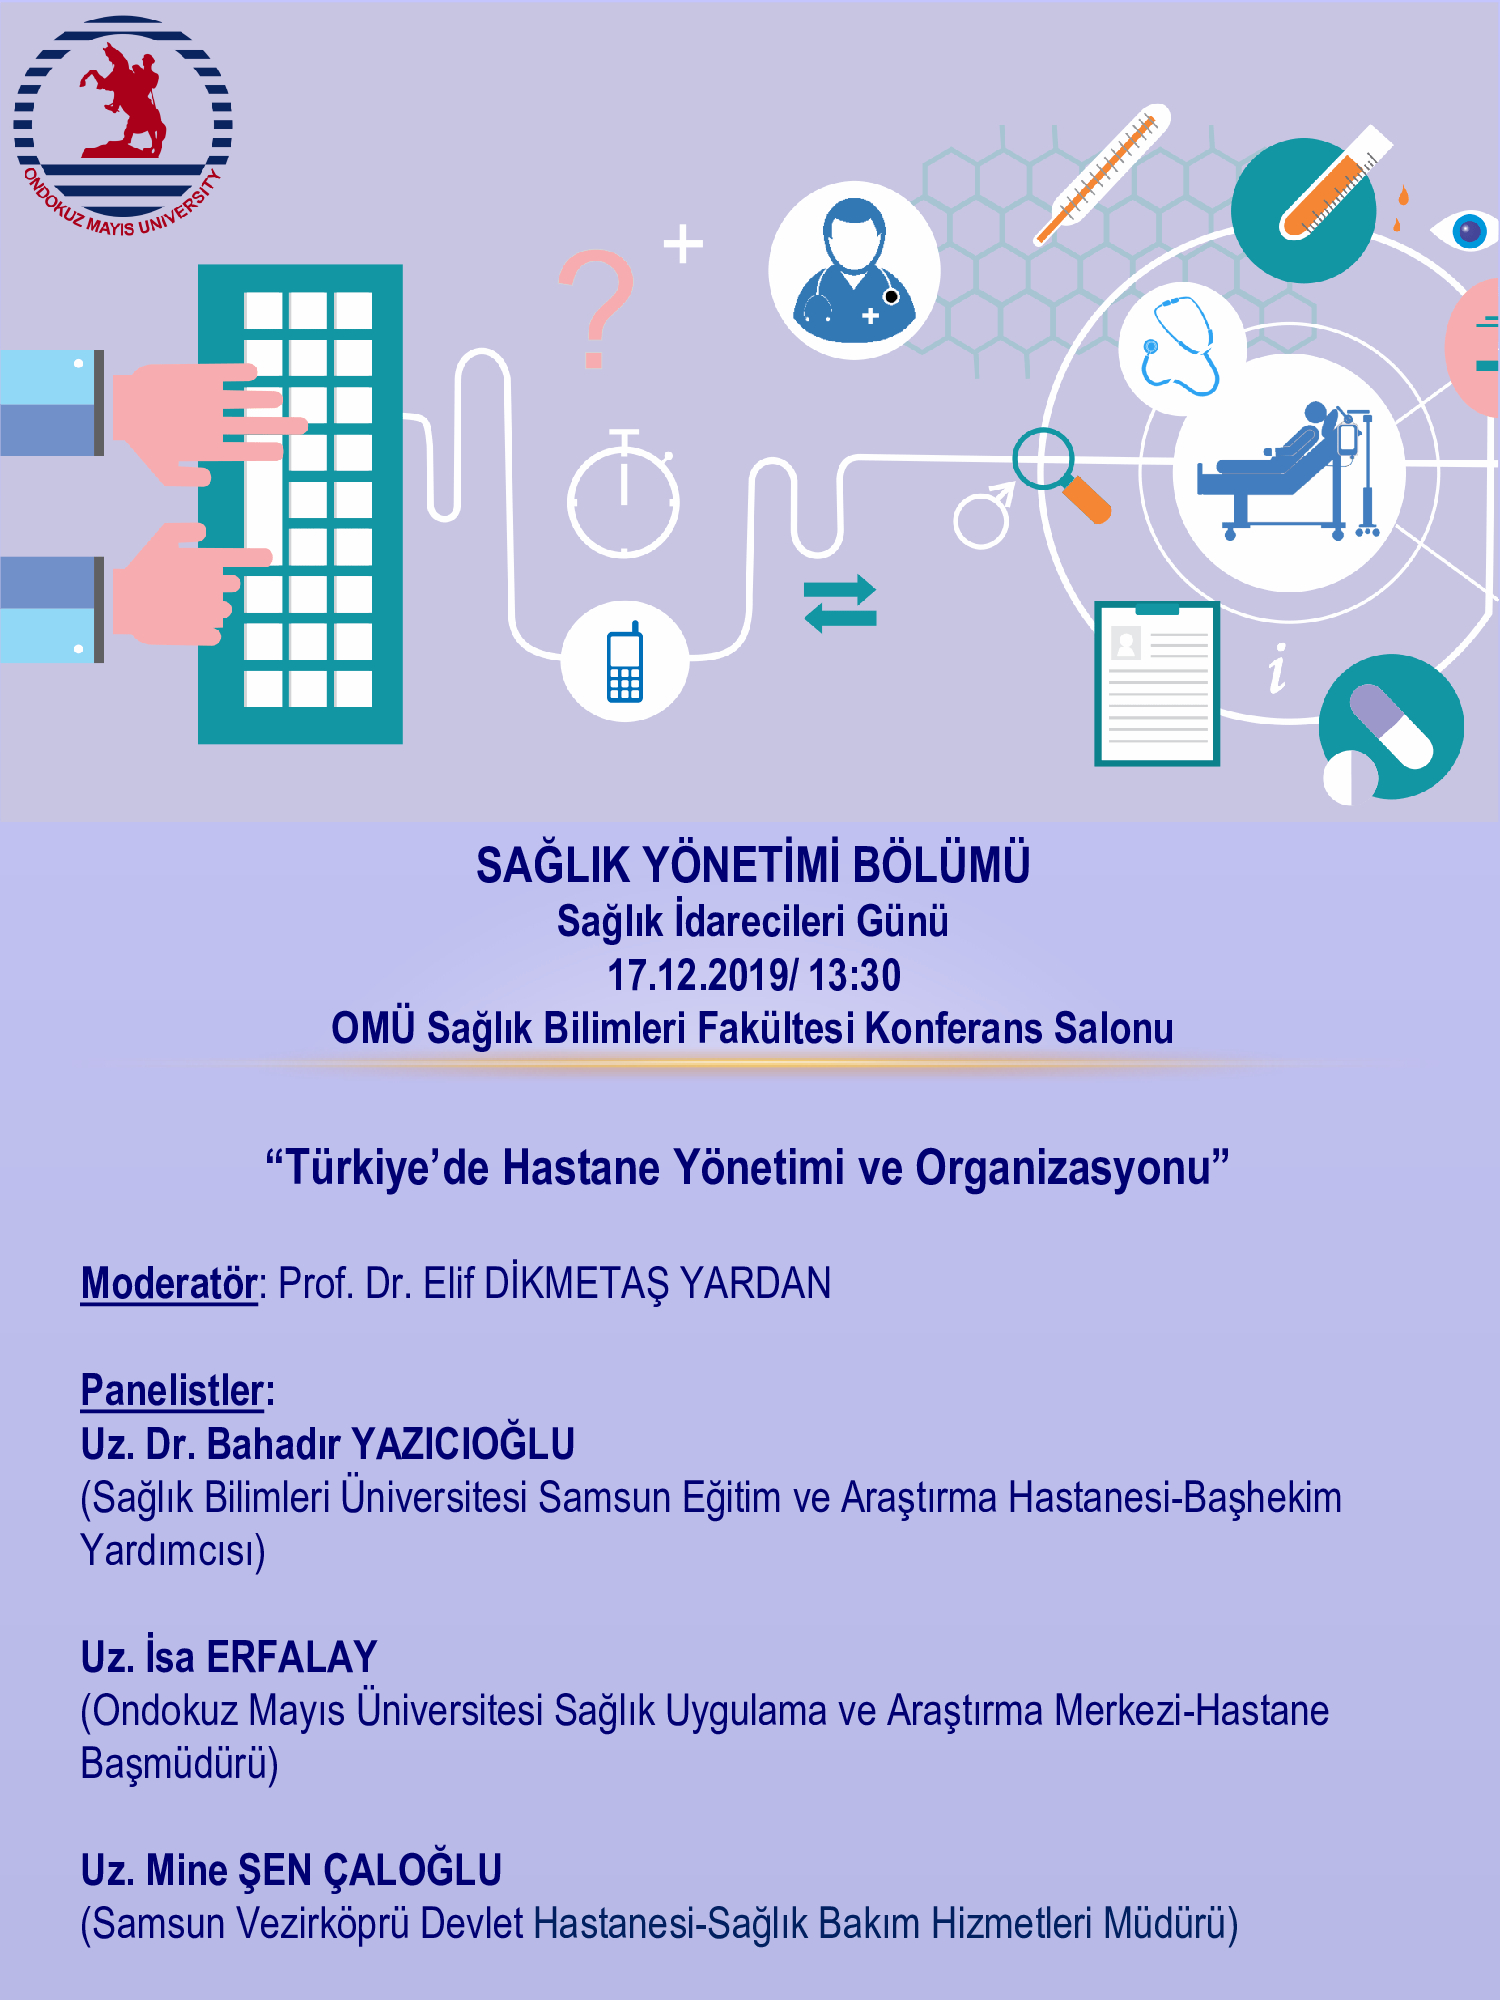 http://www.omu.edu.tr/sites/default/files/saglik-idarecileri-gunu-poster2.jpg